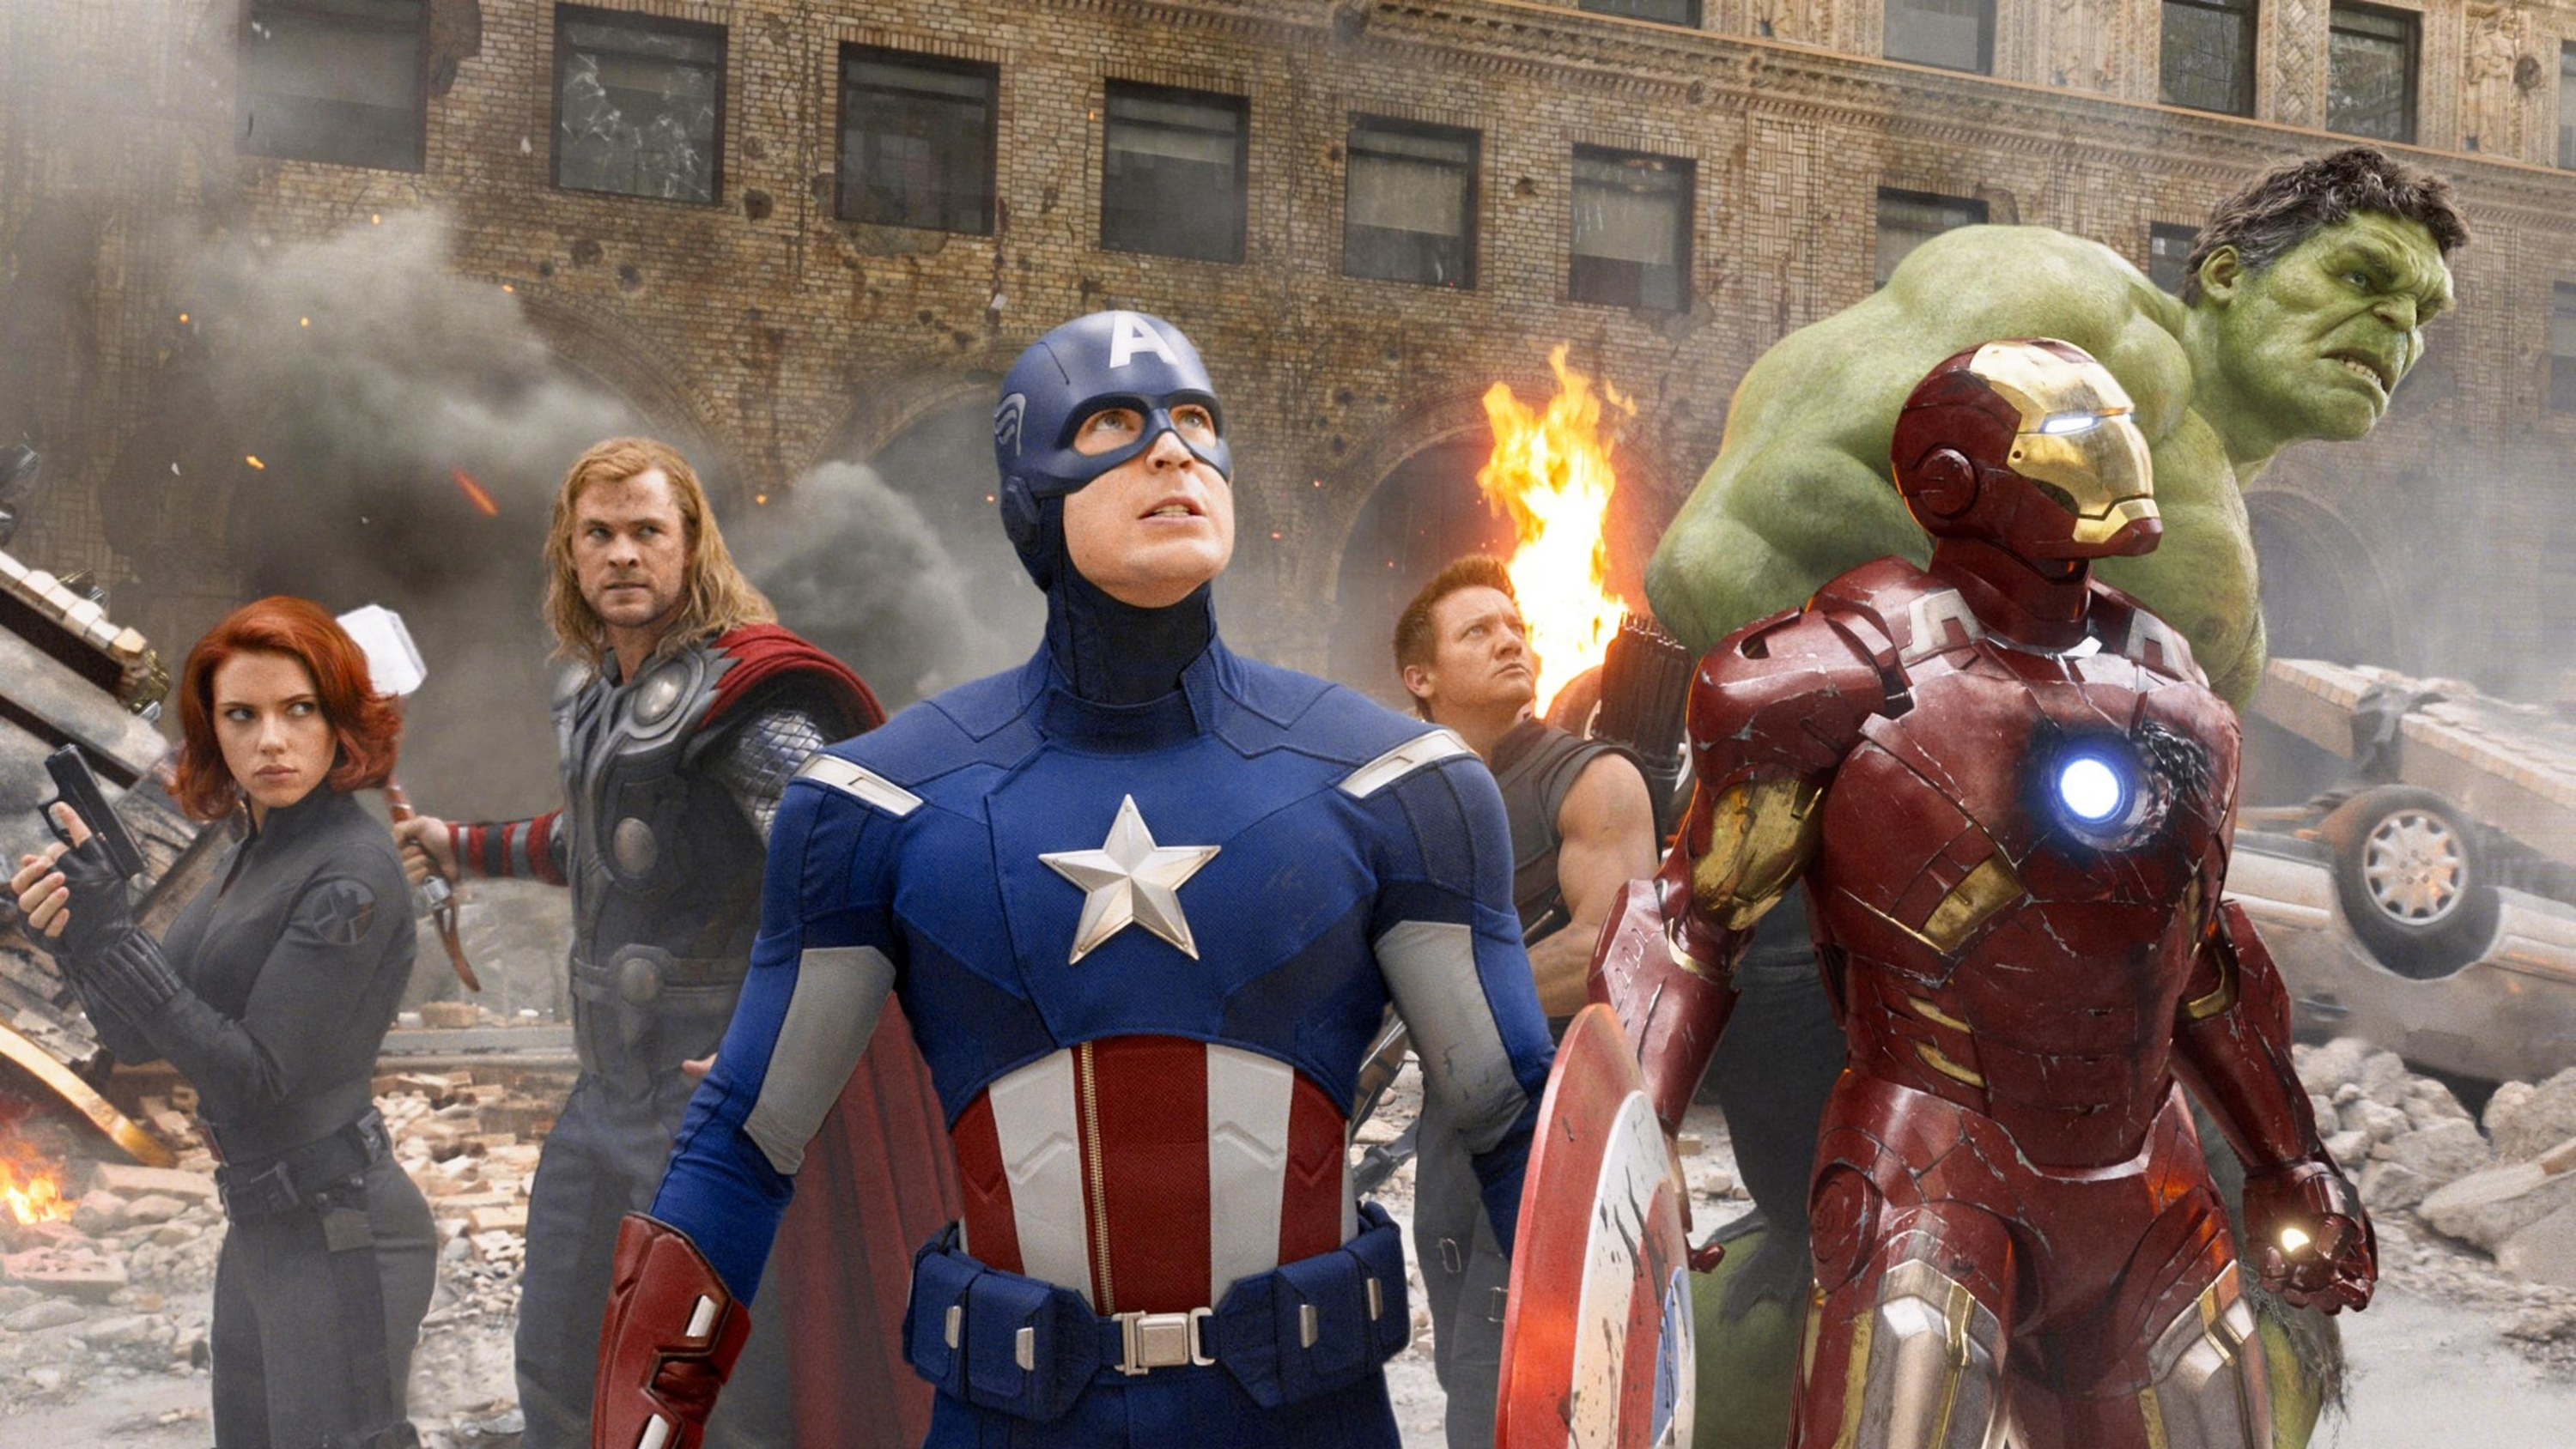 Black Widow, Thor, Captain America, Hawkeye, Iron Man and the Hulk looking at an enemy in the distance